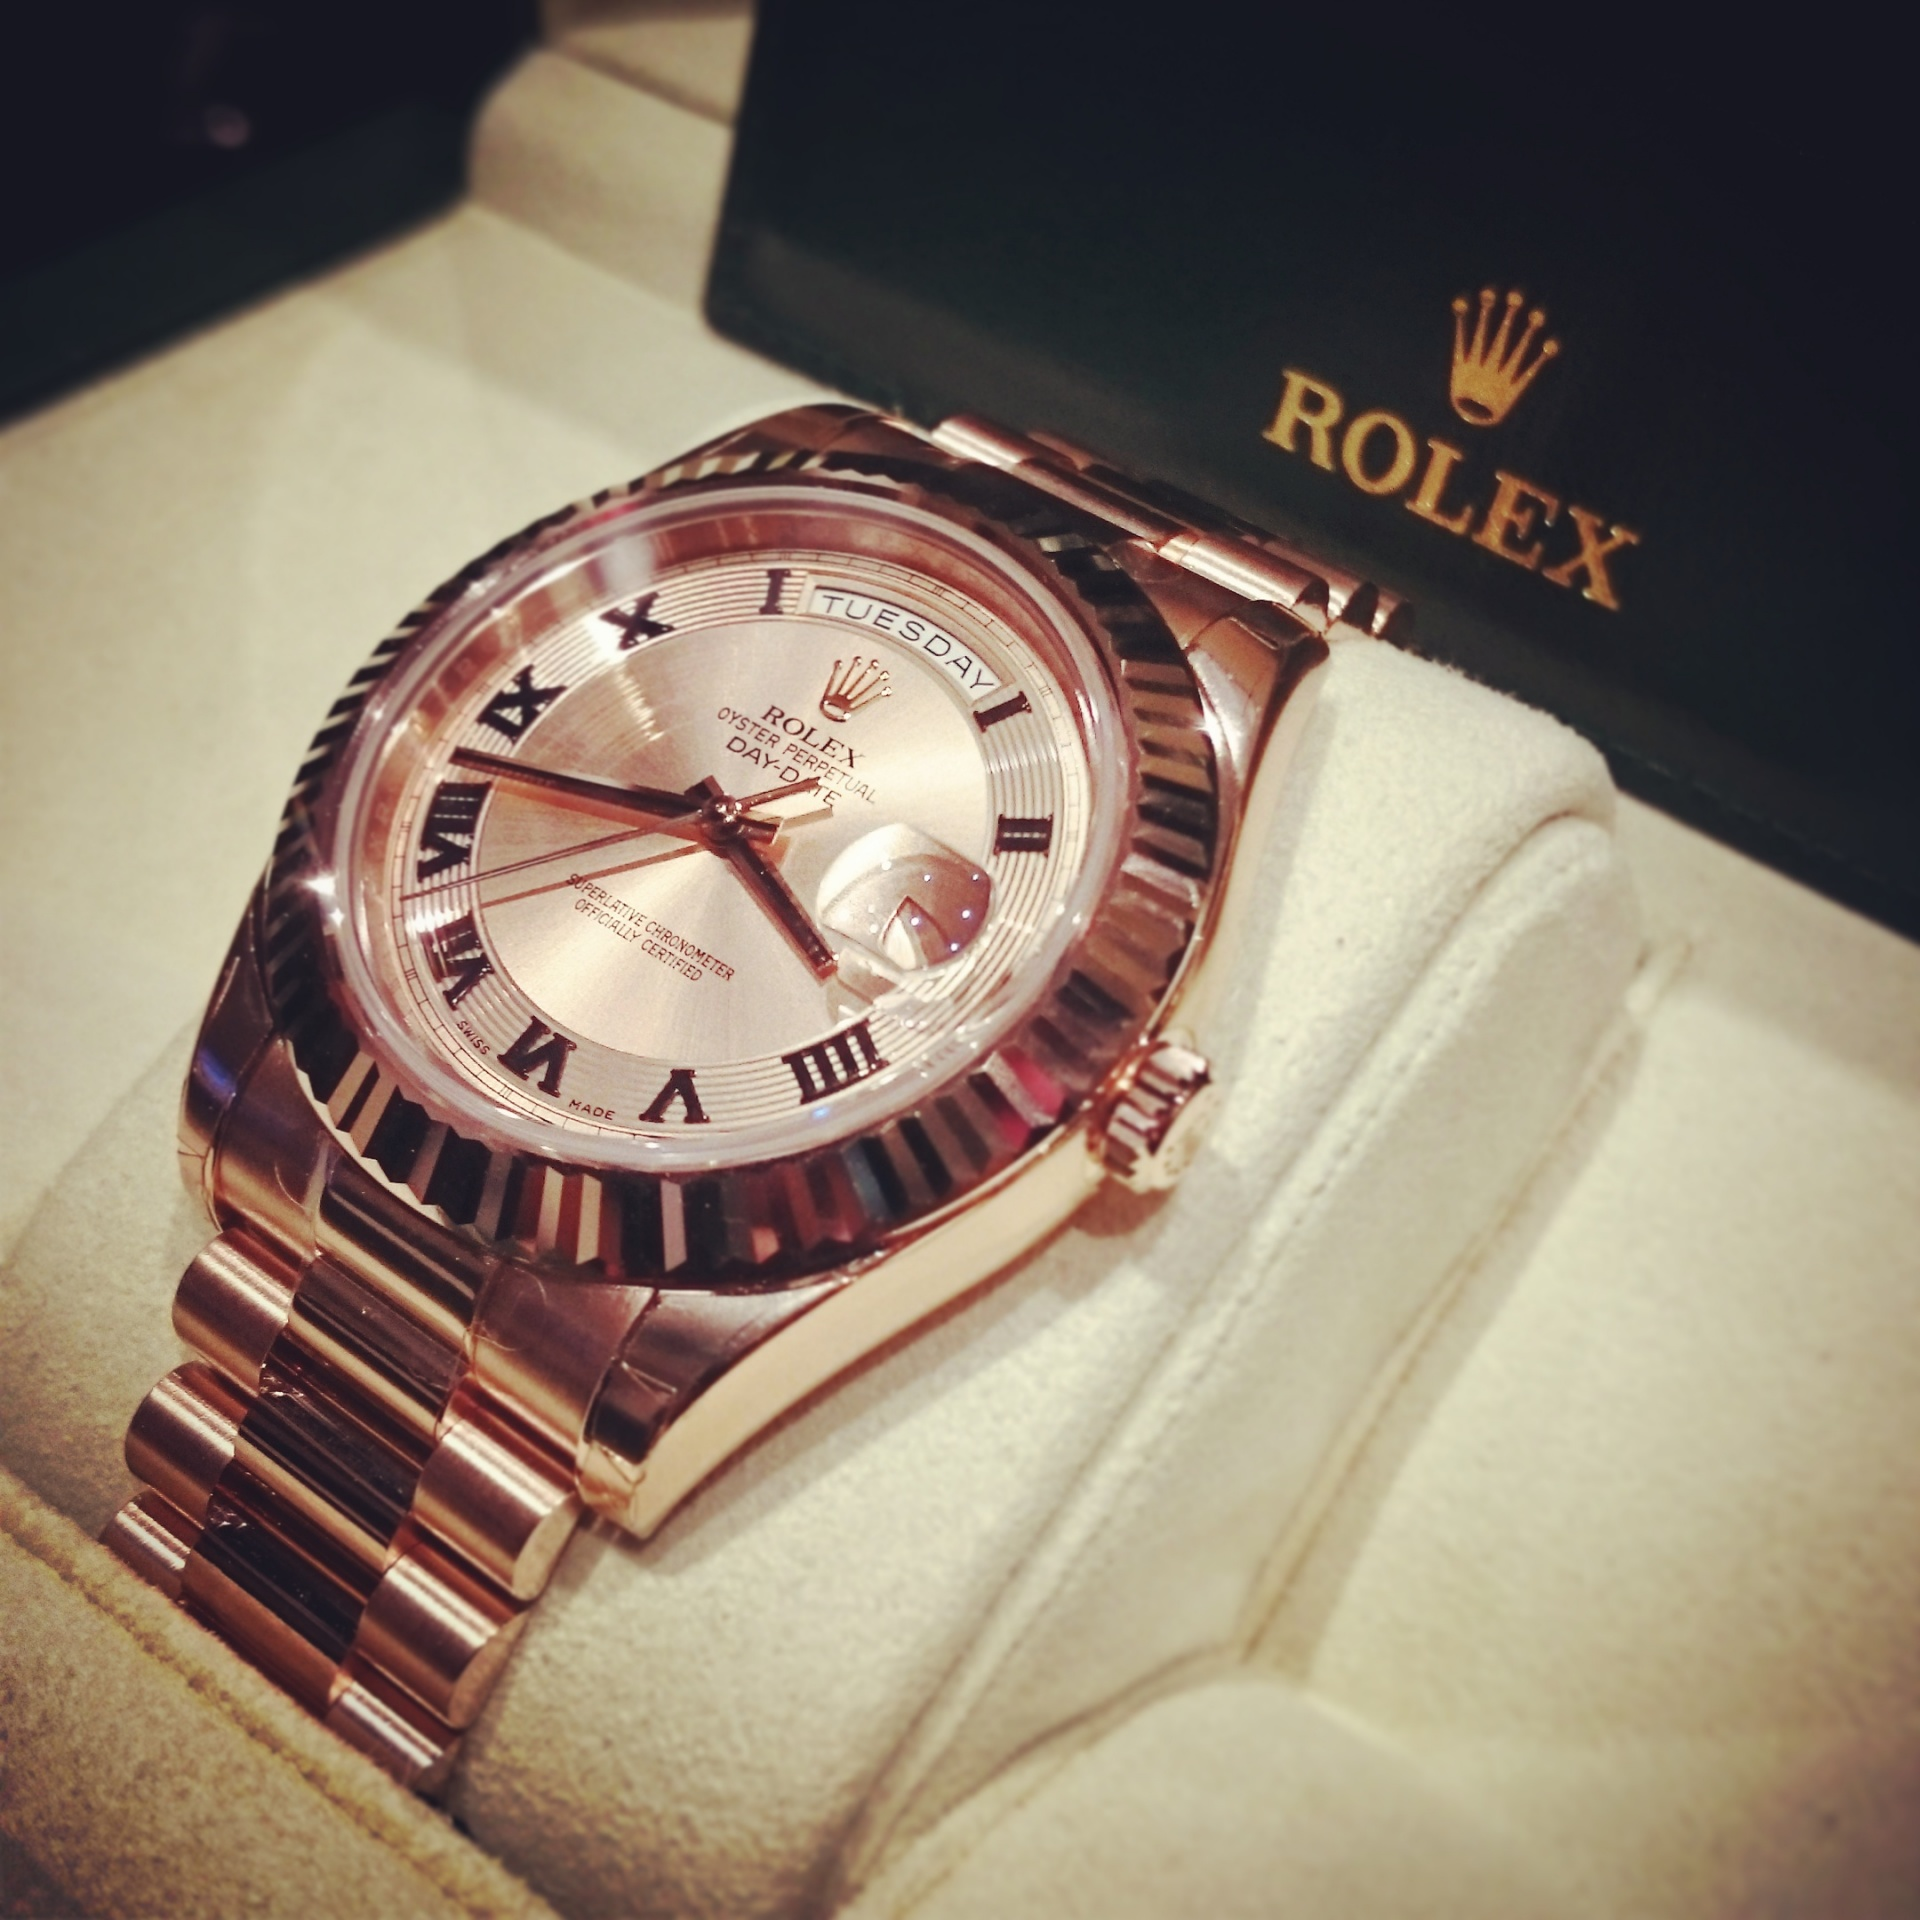 Rolex, le luxe intemporel